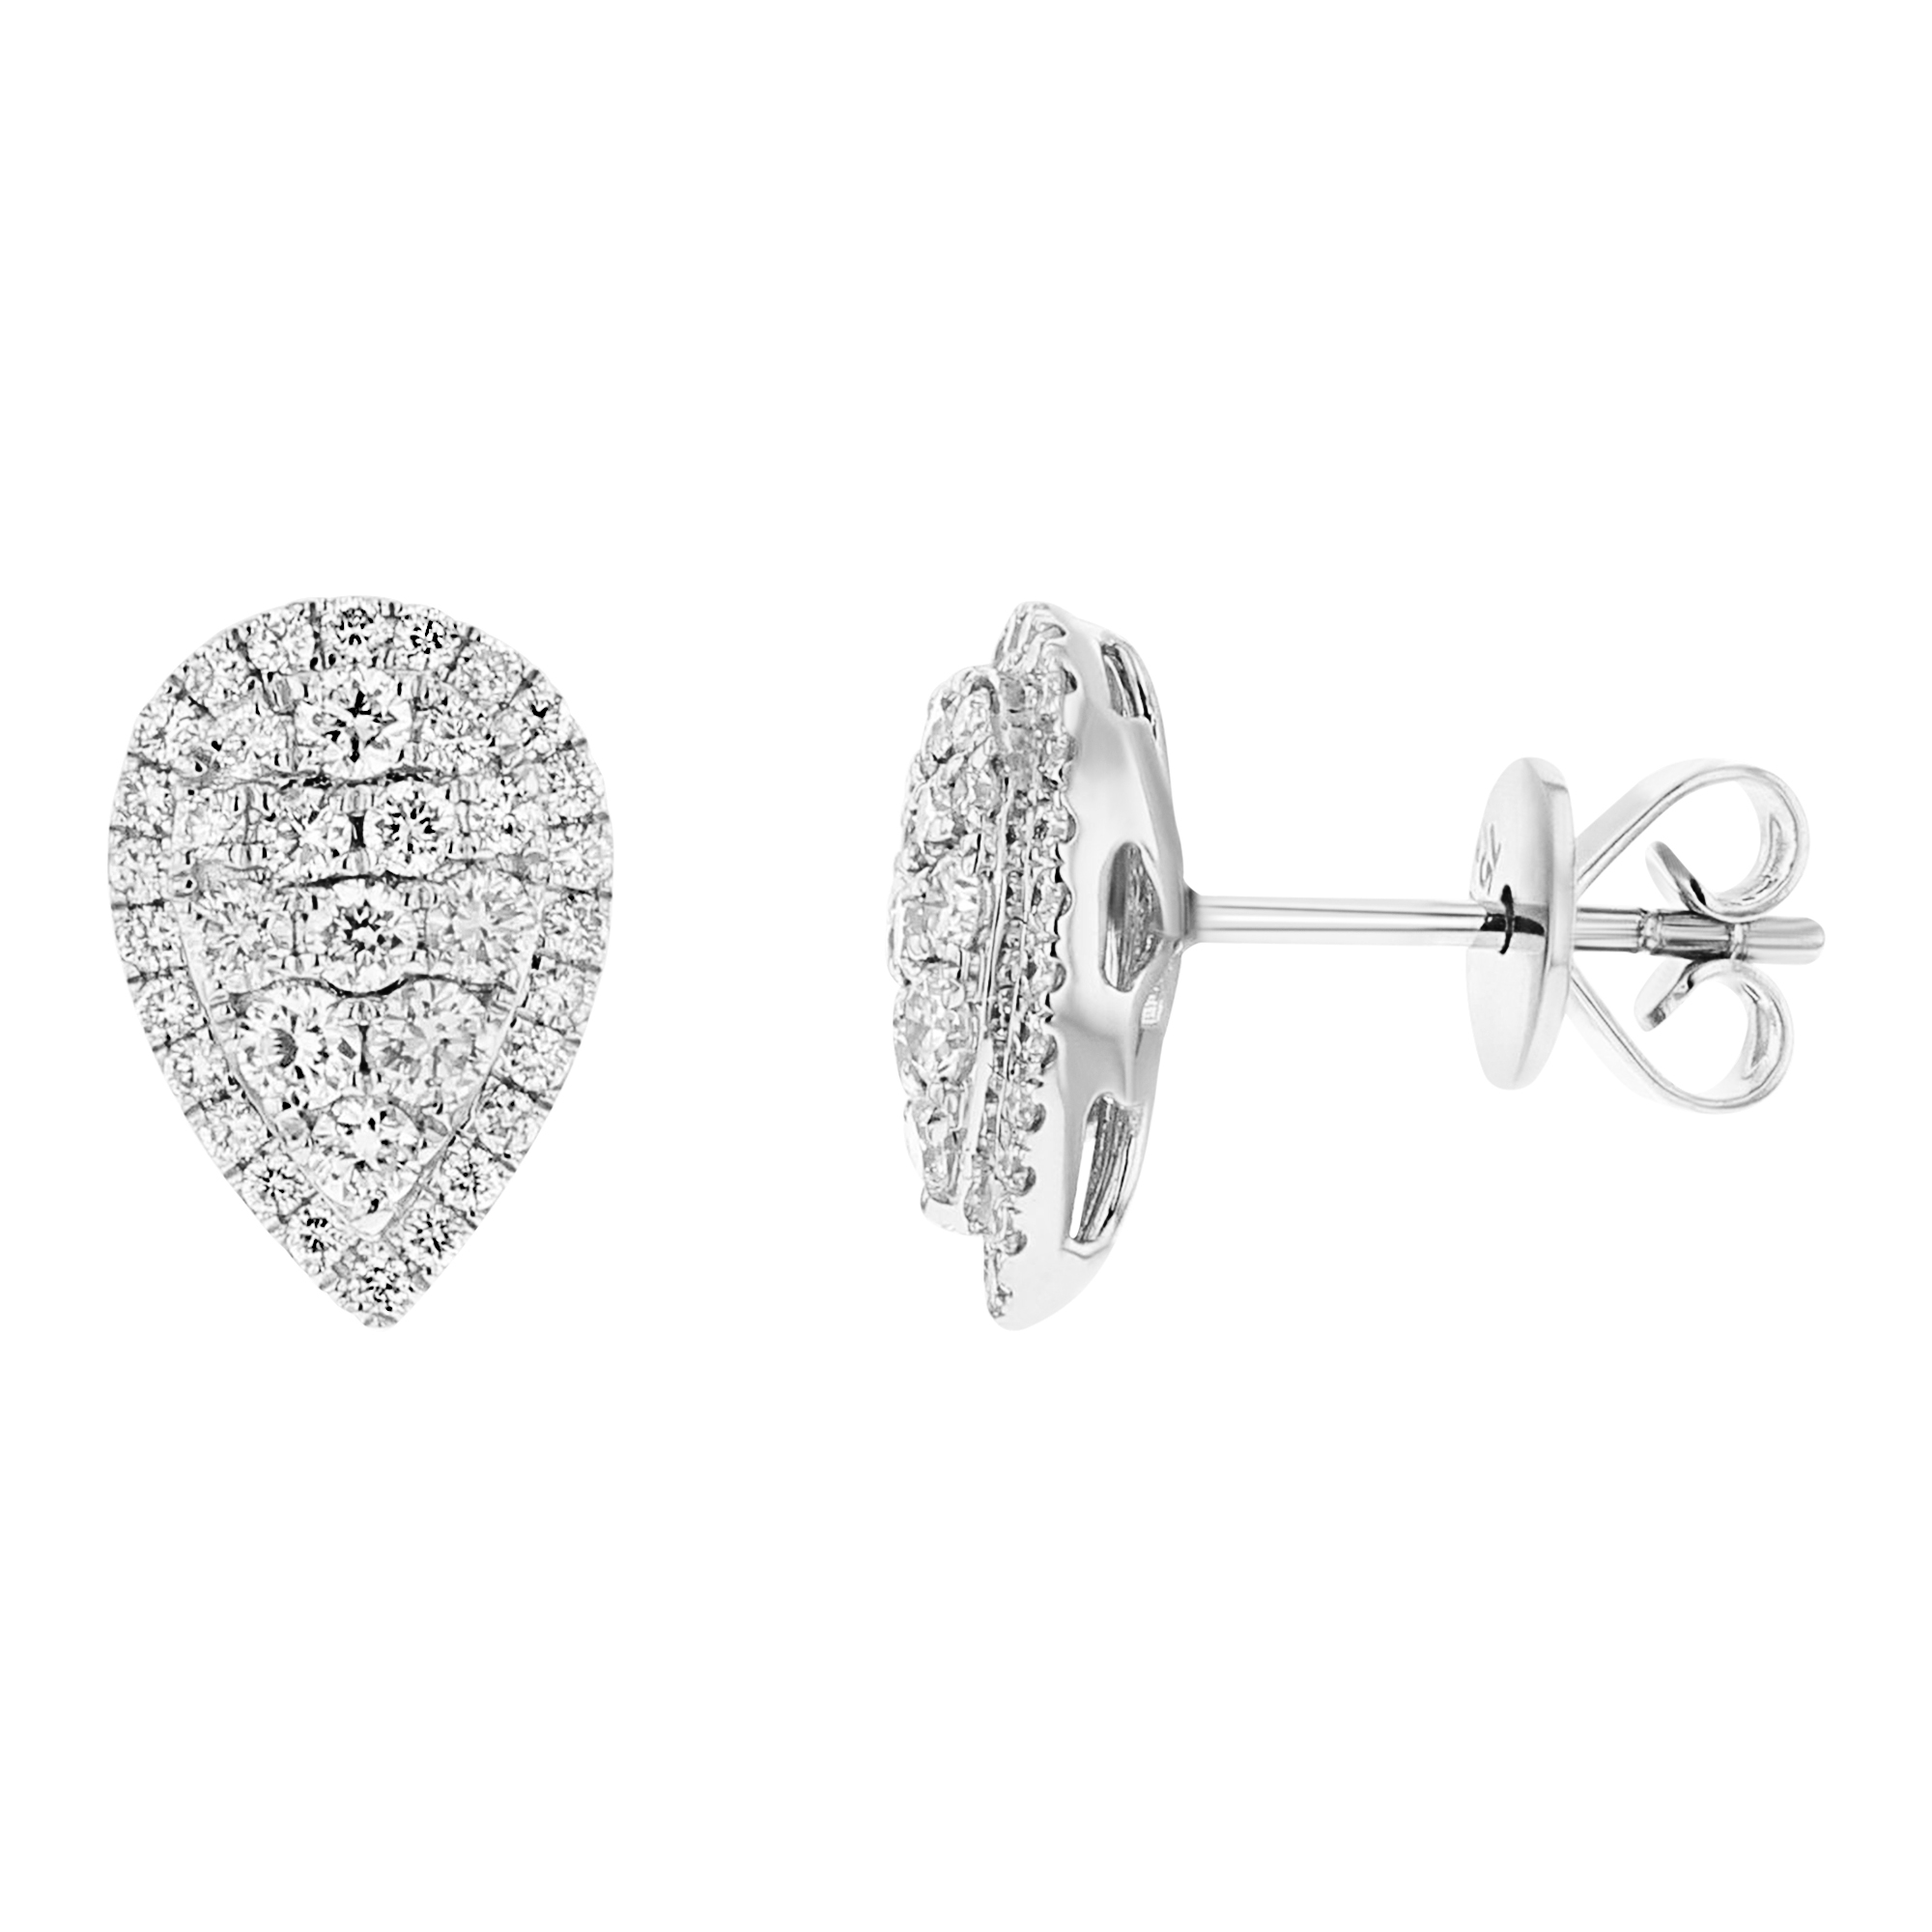 View 0.80ctw Diamond Pear Shaped Cluster Stud Earrings in 18k Whiite Gold